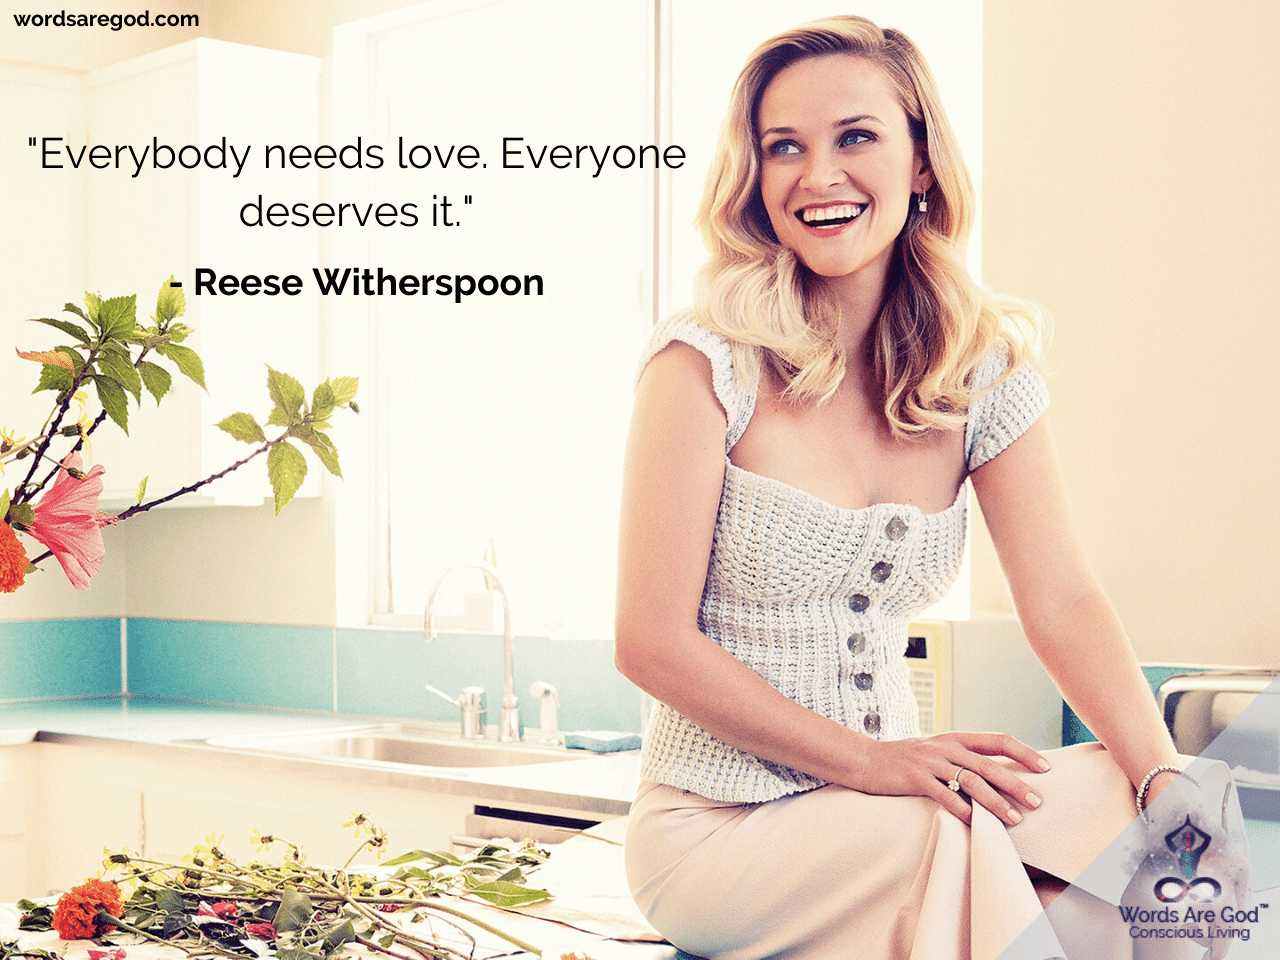 Reese Witherspoon Inspirational Quotes